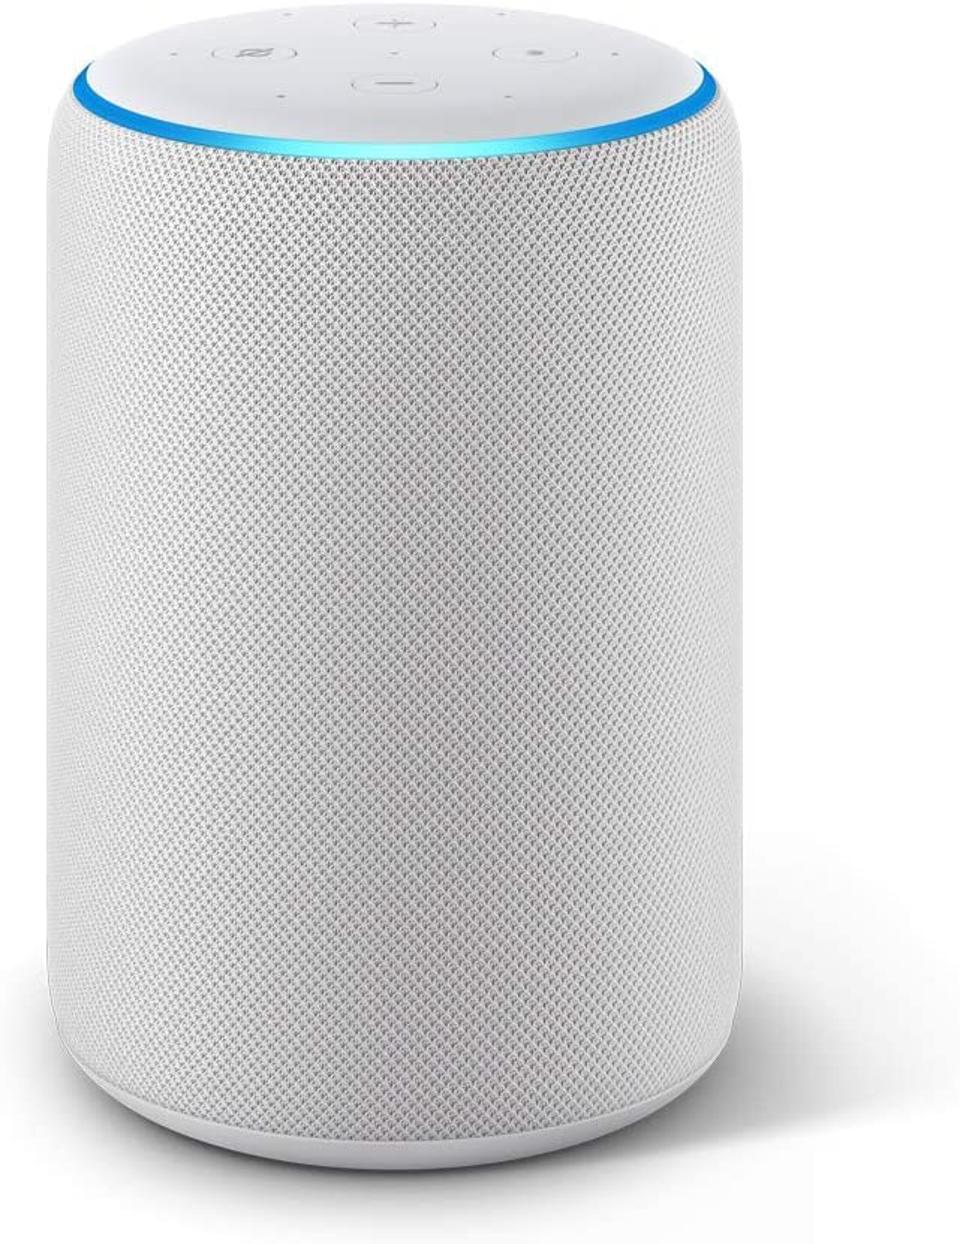 Certified Refurbished Echo Plus (2nd Gen)